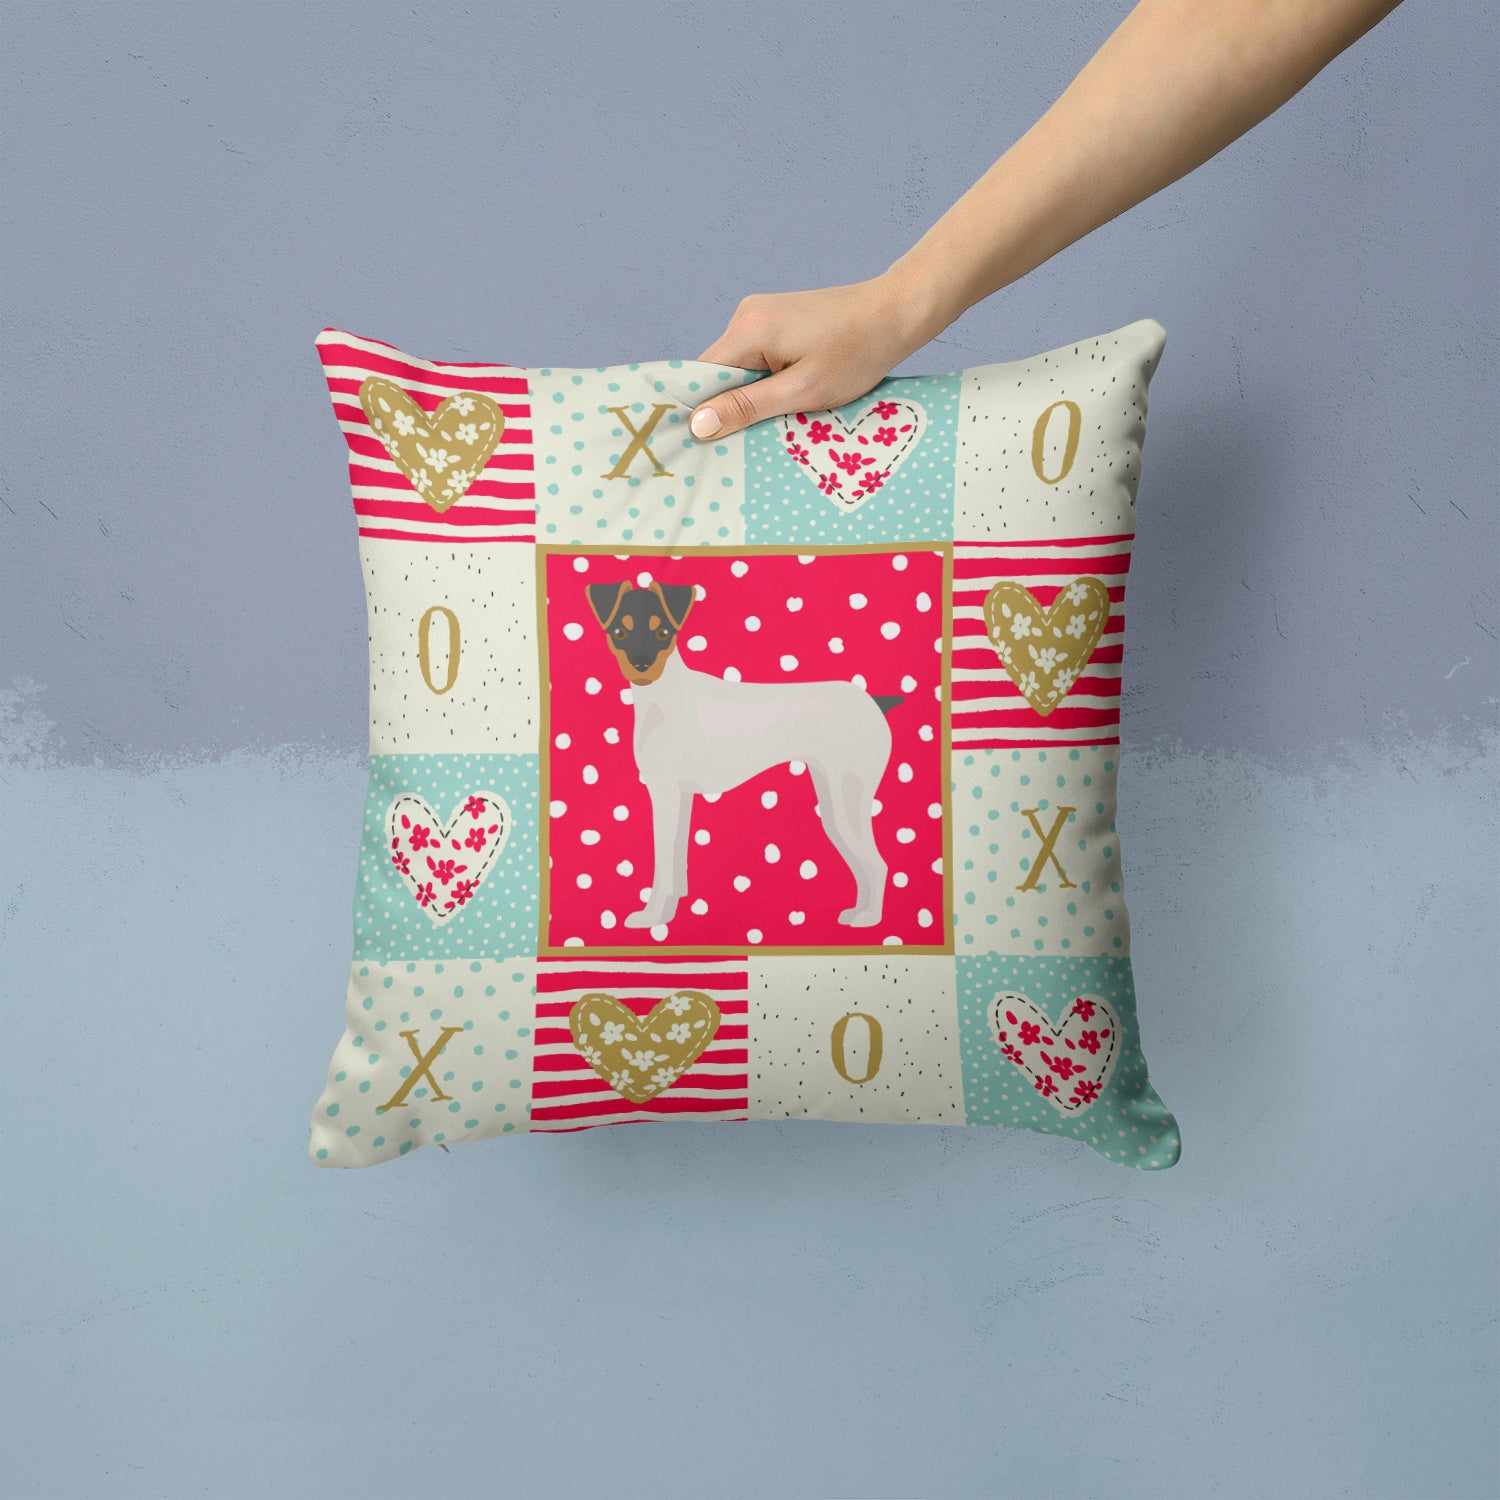 Japanese Terrier Love Fabric Decorative Pillow CK5851PW1414 by Caroline's Treasures